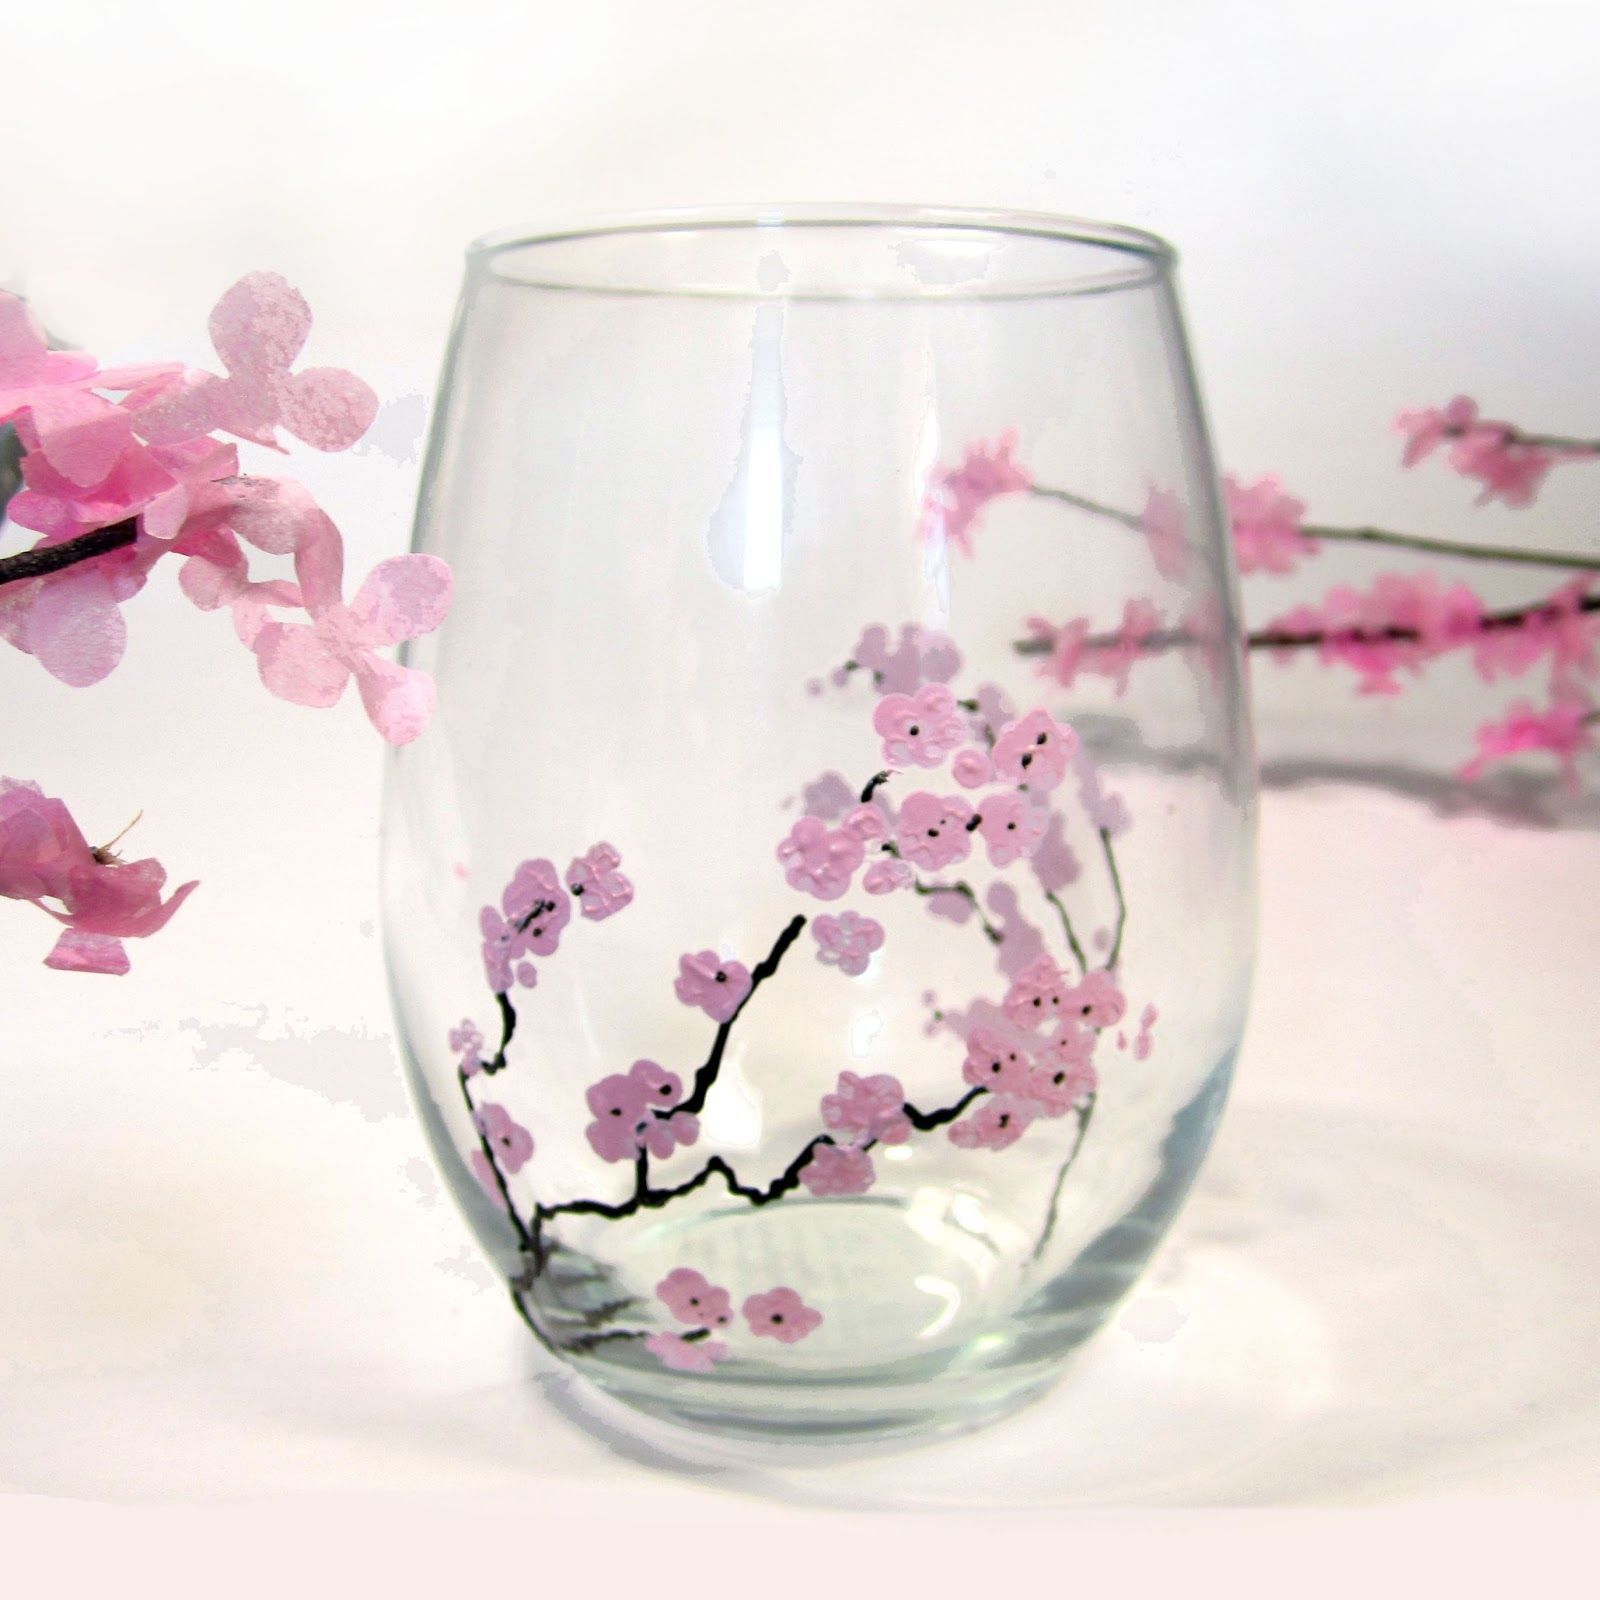 How To Hand Paint Glass With Flowers Such As These Lovely Spring Cherry Blossoms Using Martha Stewart Cra Glass Crafts Wine Glass Crafts Glass Painting Designs